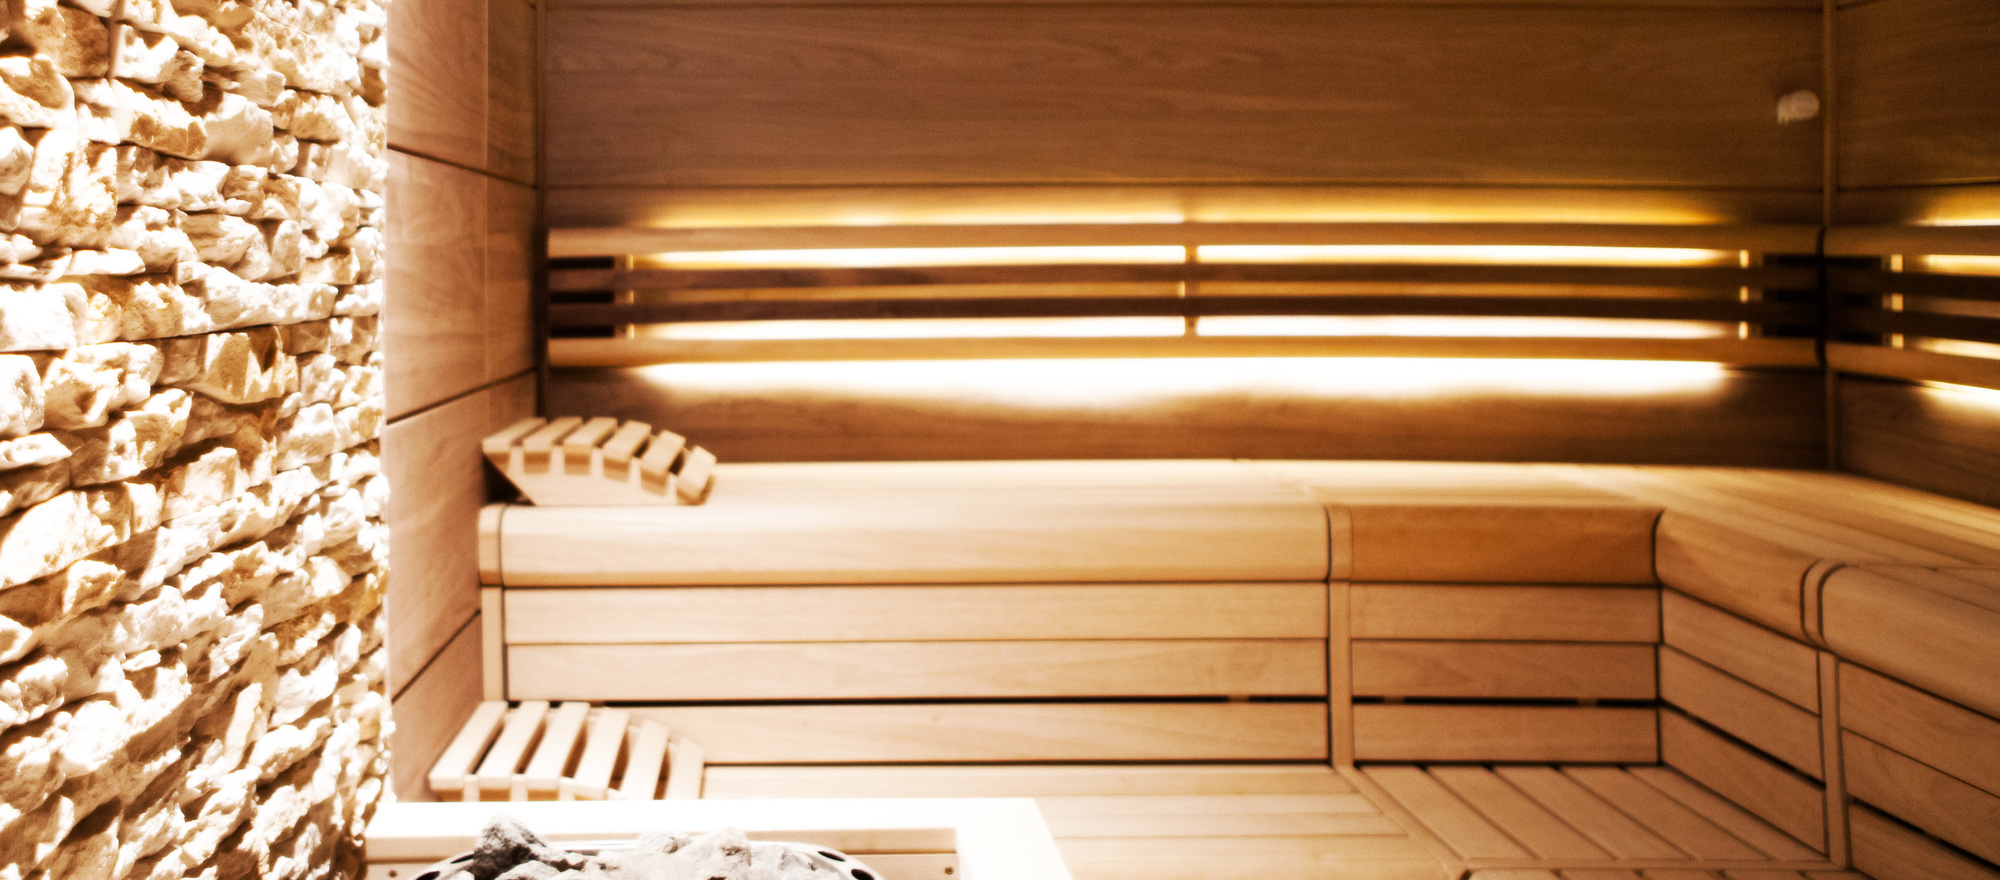 Leave every day's cares behind and enjoy yourself in our sauna in the 4-star hotel Ringhotel Nassau-Oranien in Limburg/Hadamar